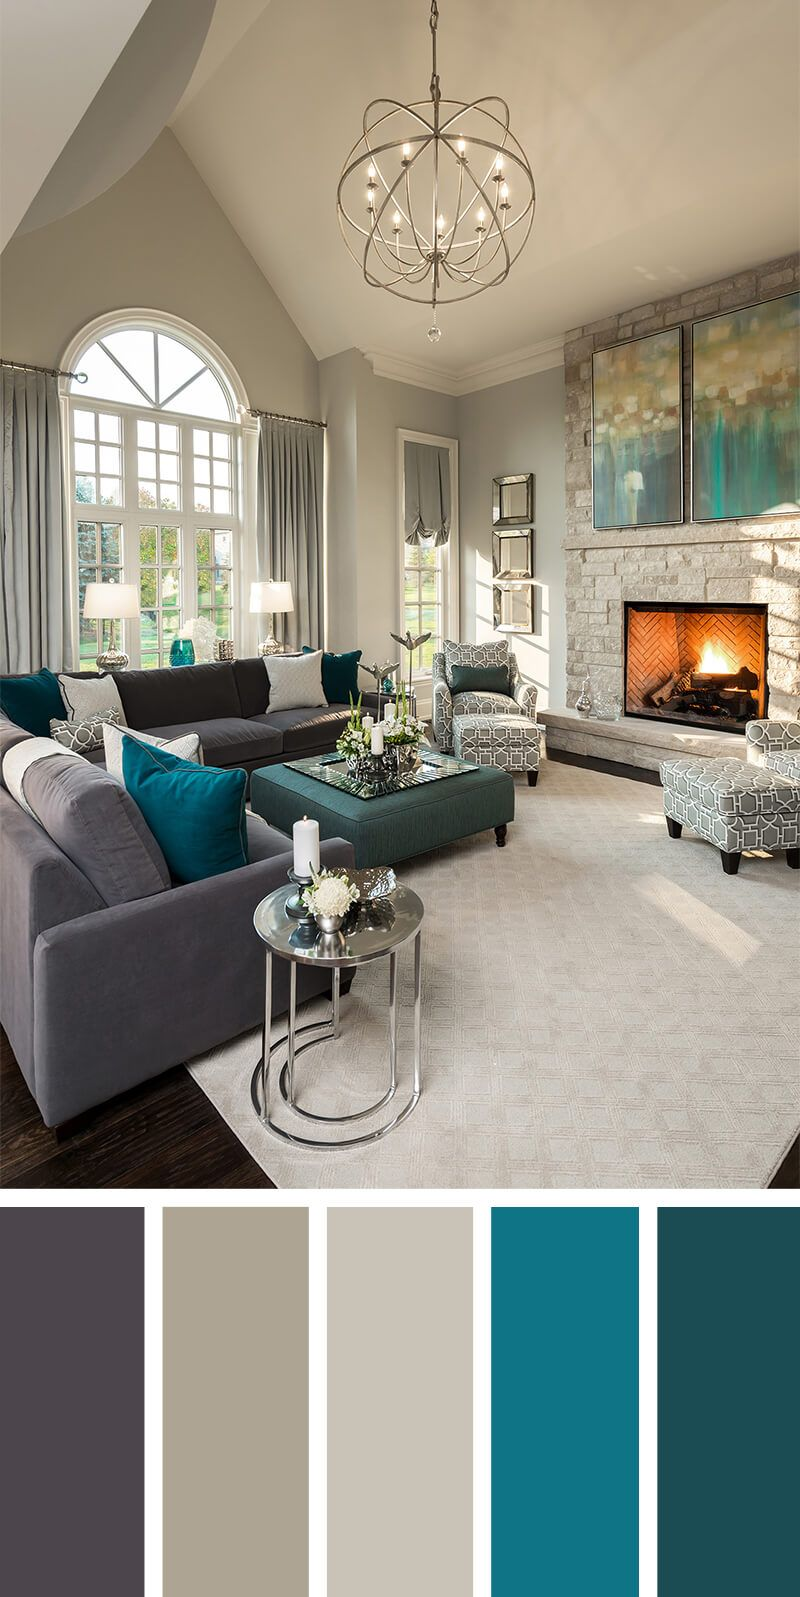 7 Living Room Color Schemes that will Make Your Space Look Professionally  Designed | Living room color schemes, Good living room colors, Living room  color